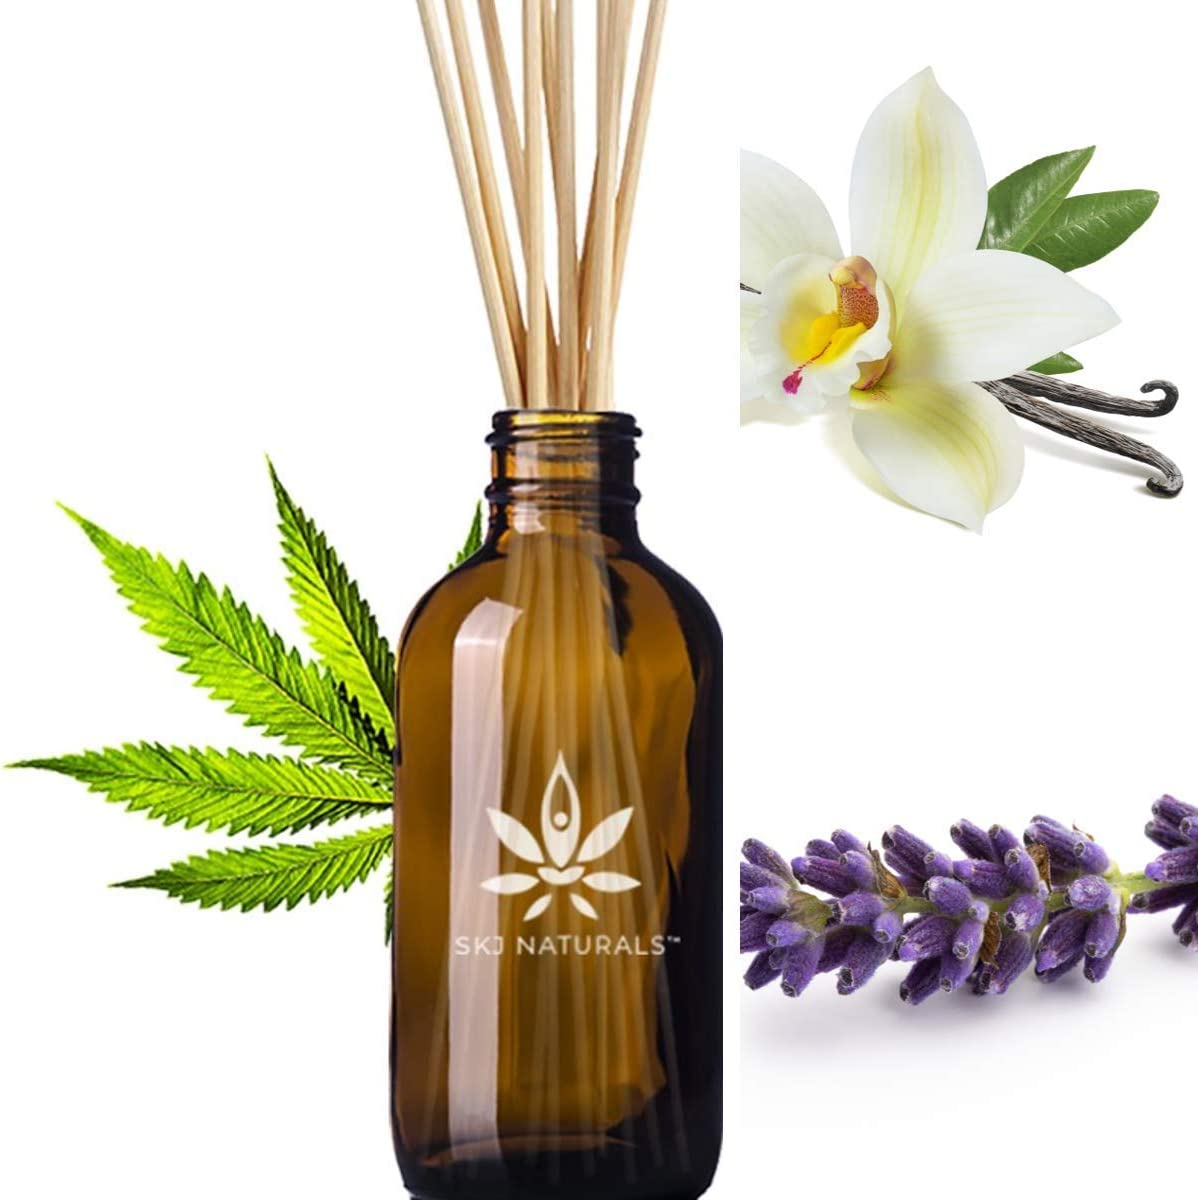 Soothing Hemp Lavender Vanilla Aromatherapy Reed Diffusers | 100% Pure Organic Essential Oils | 10 Reed Diffuser Sticks and 4 oz Bottle | Home Fragrance | Hand Made in The USA